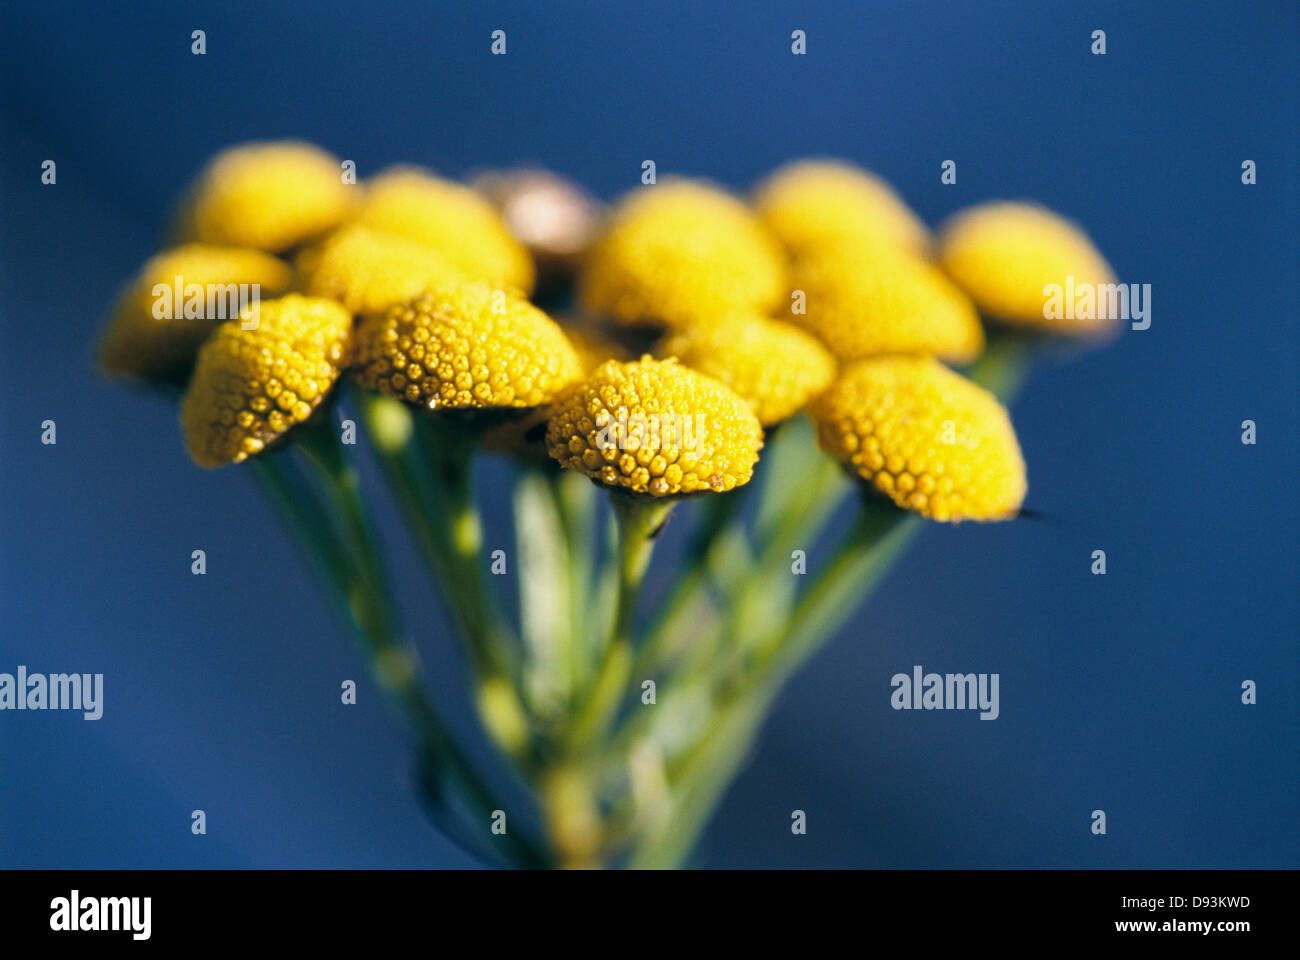 Tansy, close-up, Sweden. - Stock Image